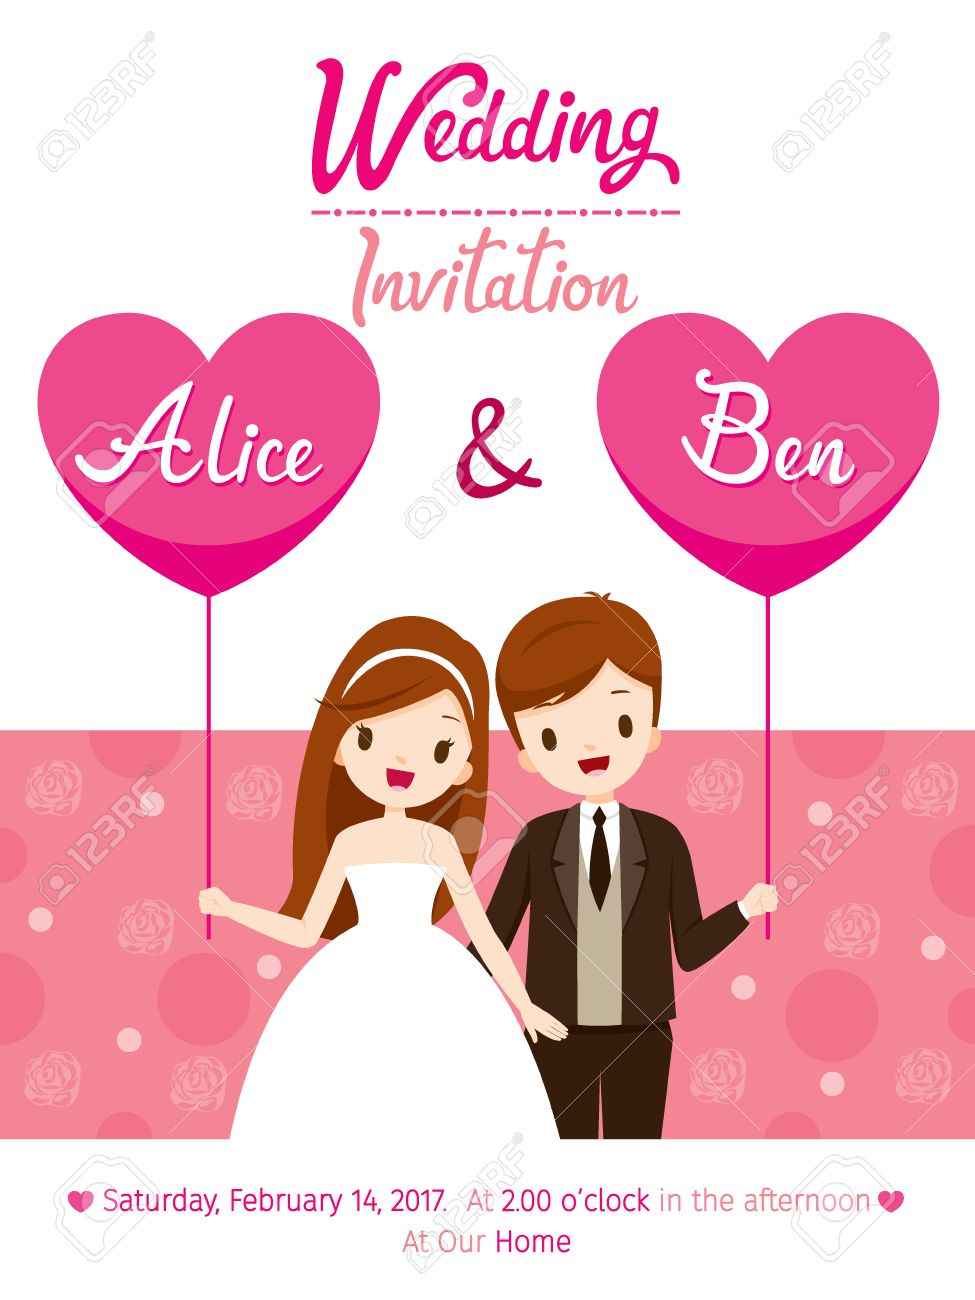 Wedding Invitation Card Template, Bride And Groom, Love, Relationship, Sweetheart, Engagement, Valentine's Day - 69082738